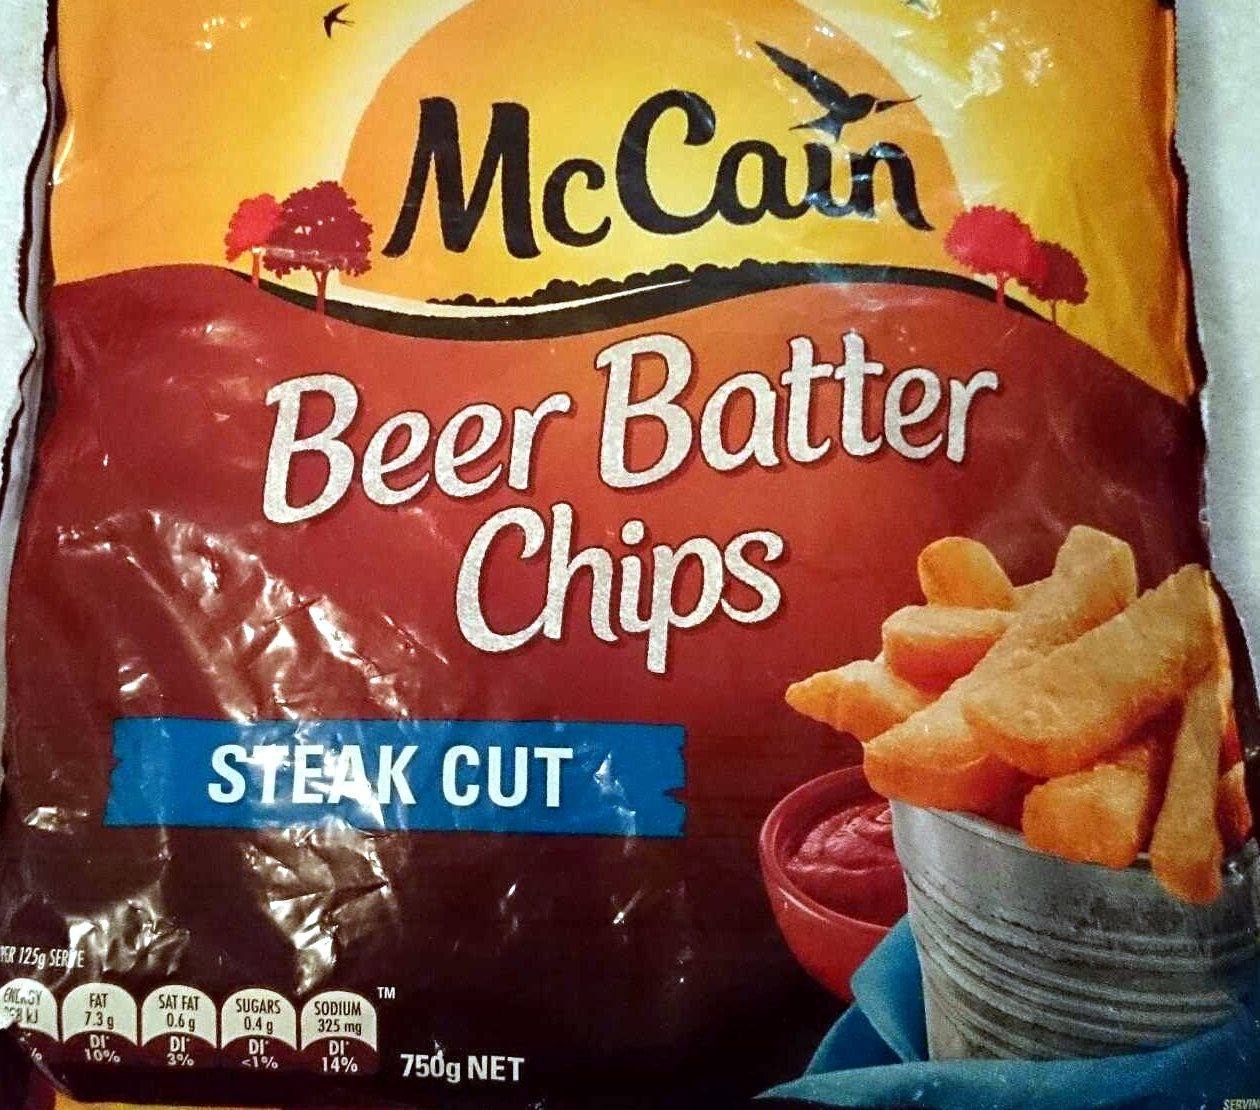 Beer Batter Chips - Steak Cut - McCain - 750g